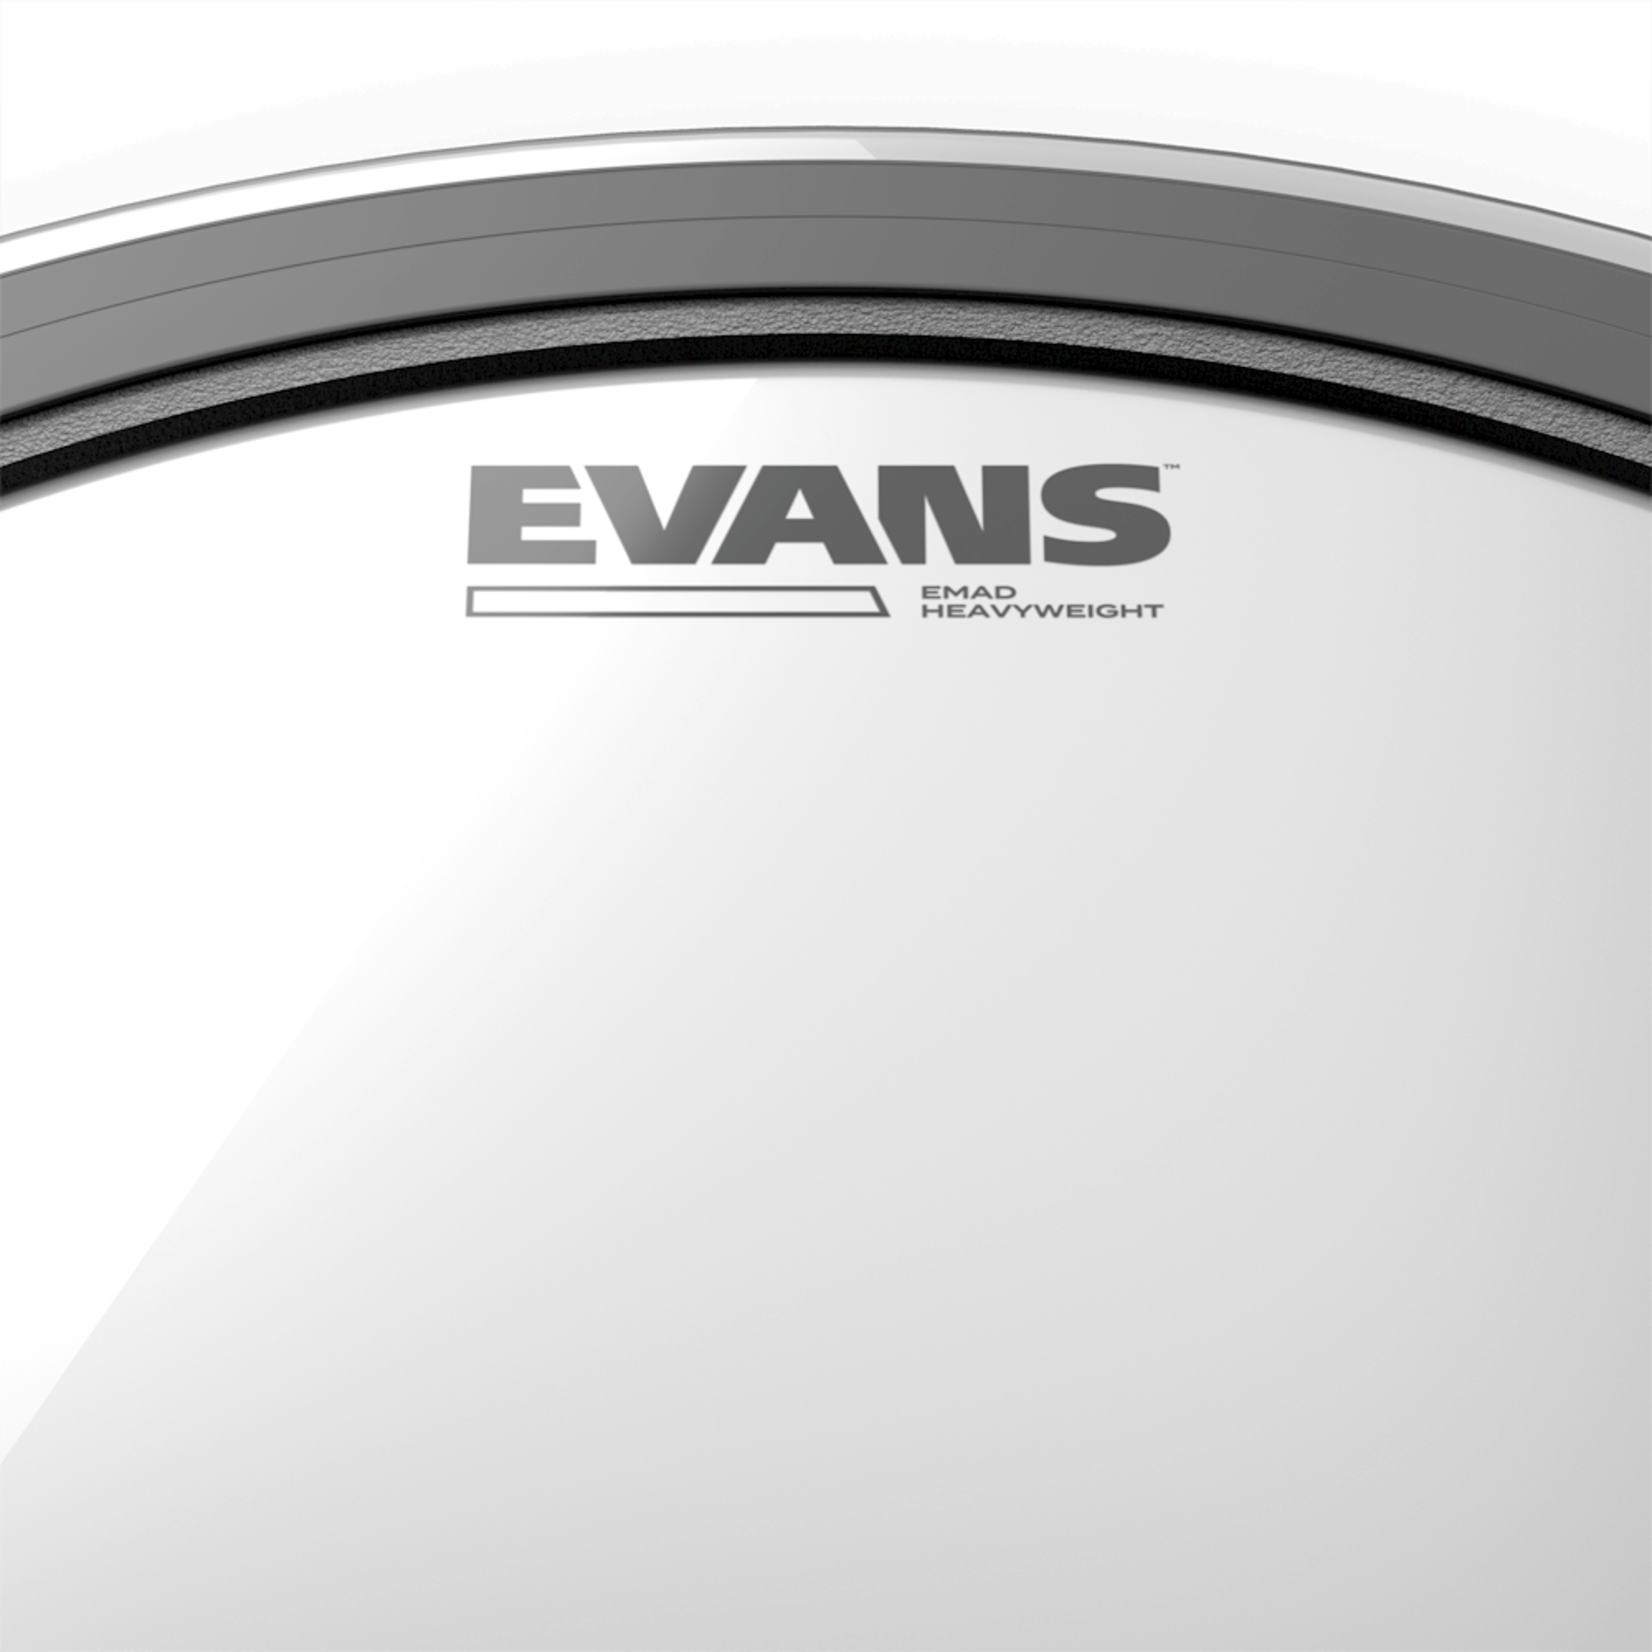 Evans EVANS EMAD HEAVYWEIGHT CLEAR BASS DRUMHEAD